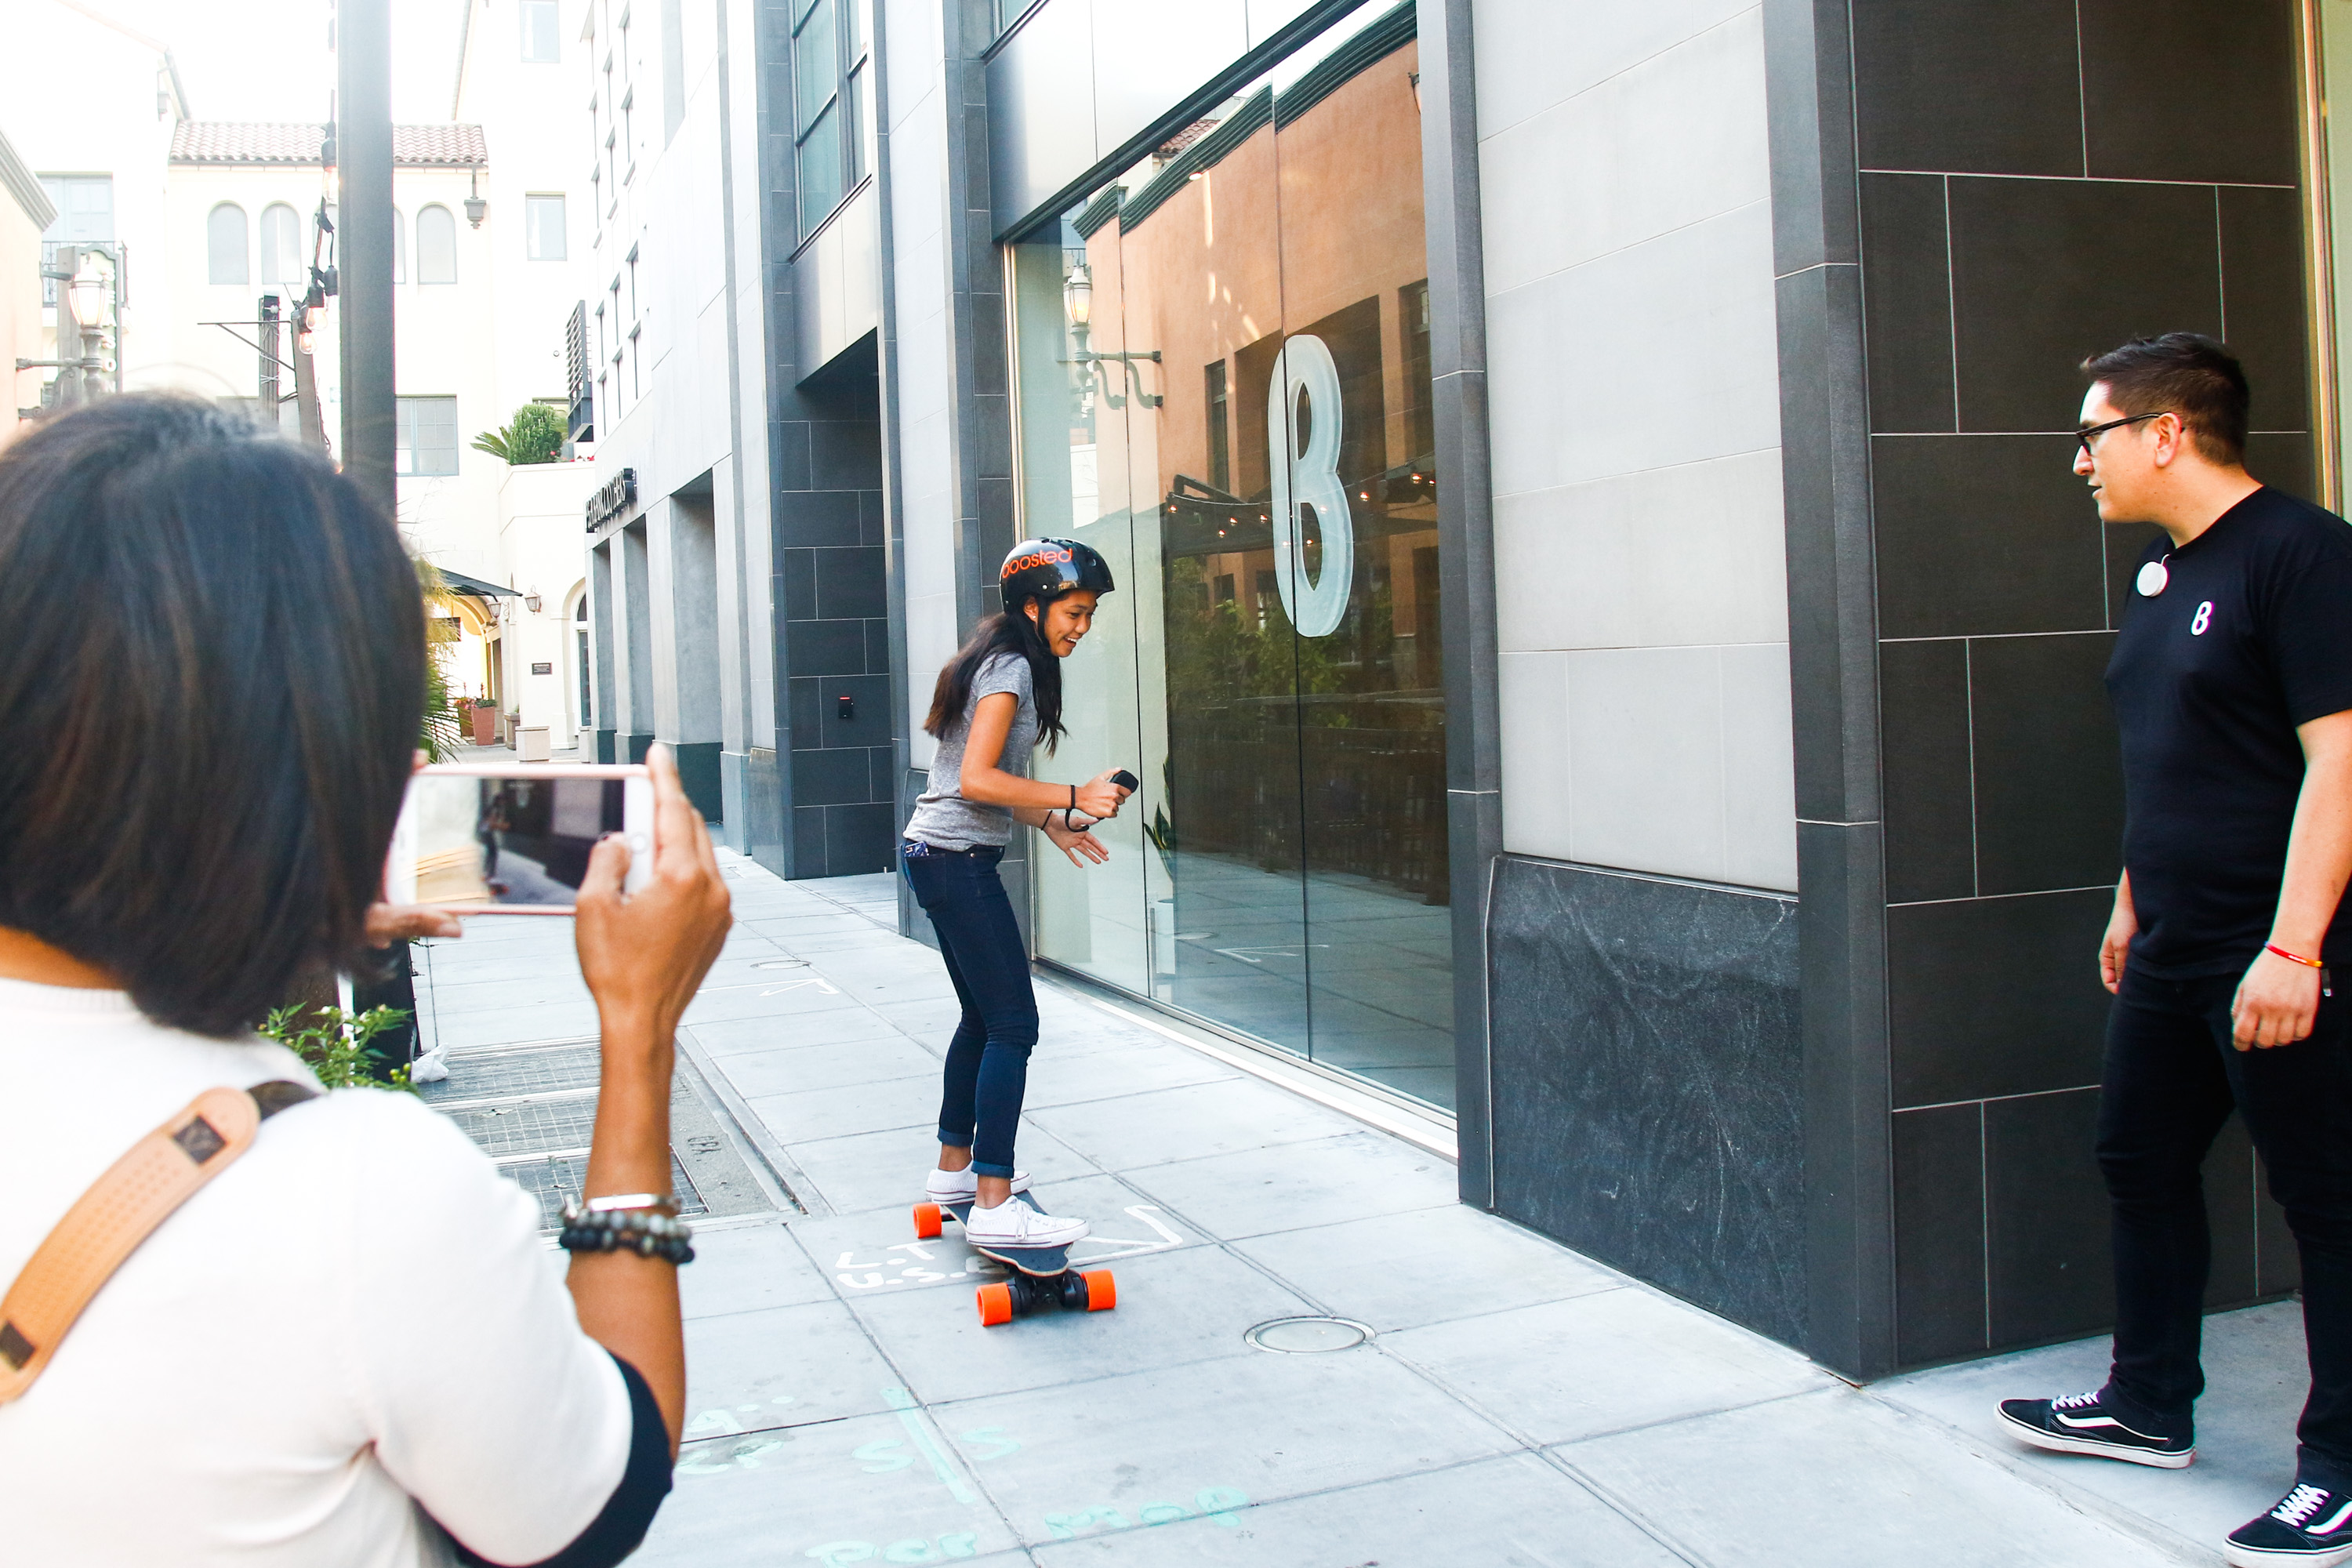 Maria Sit, takes video of her daughter Maile Sit, 14, as she tries out the Boosted Dual electric skateboard at the b8ta store in Palo Alto while Kevin Chu, a b8ta tester teaches her how to use the skateboard on Aug.17, 2017. b8ta encourages customers to test out and play with the numerous tech products for sale. Photo by Veronica Weber.